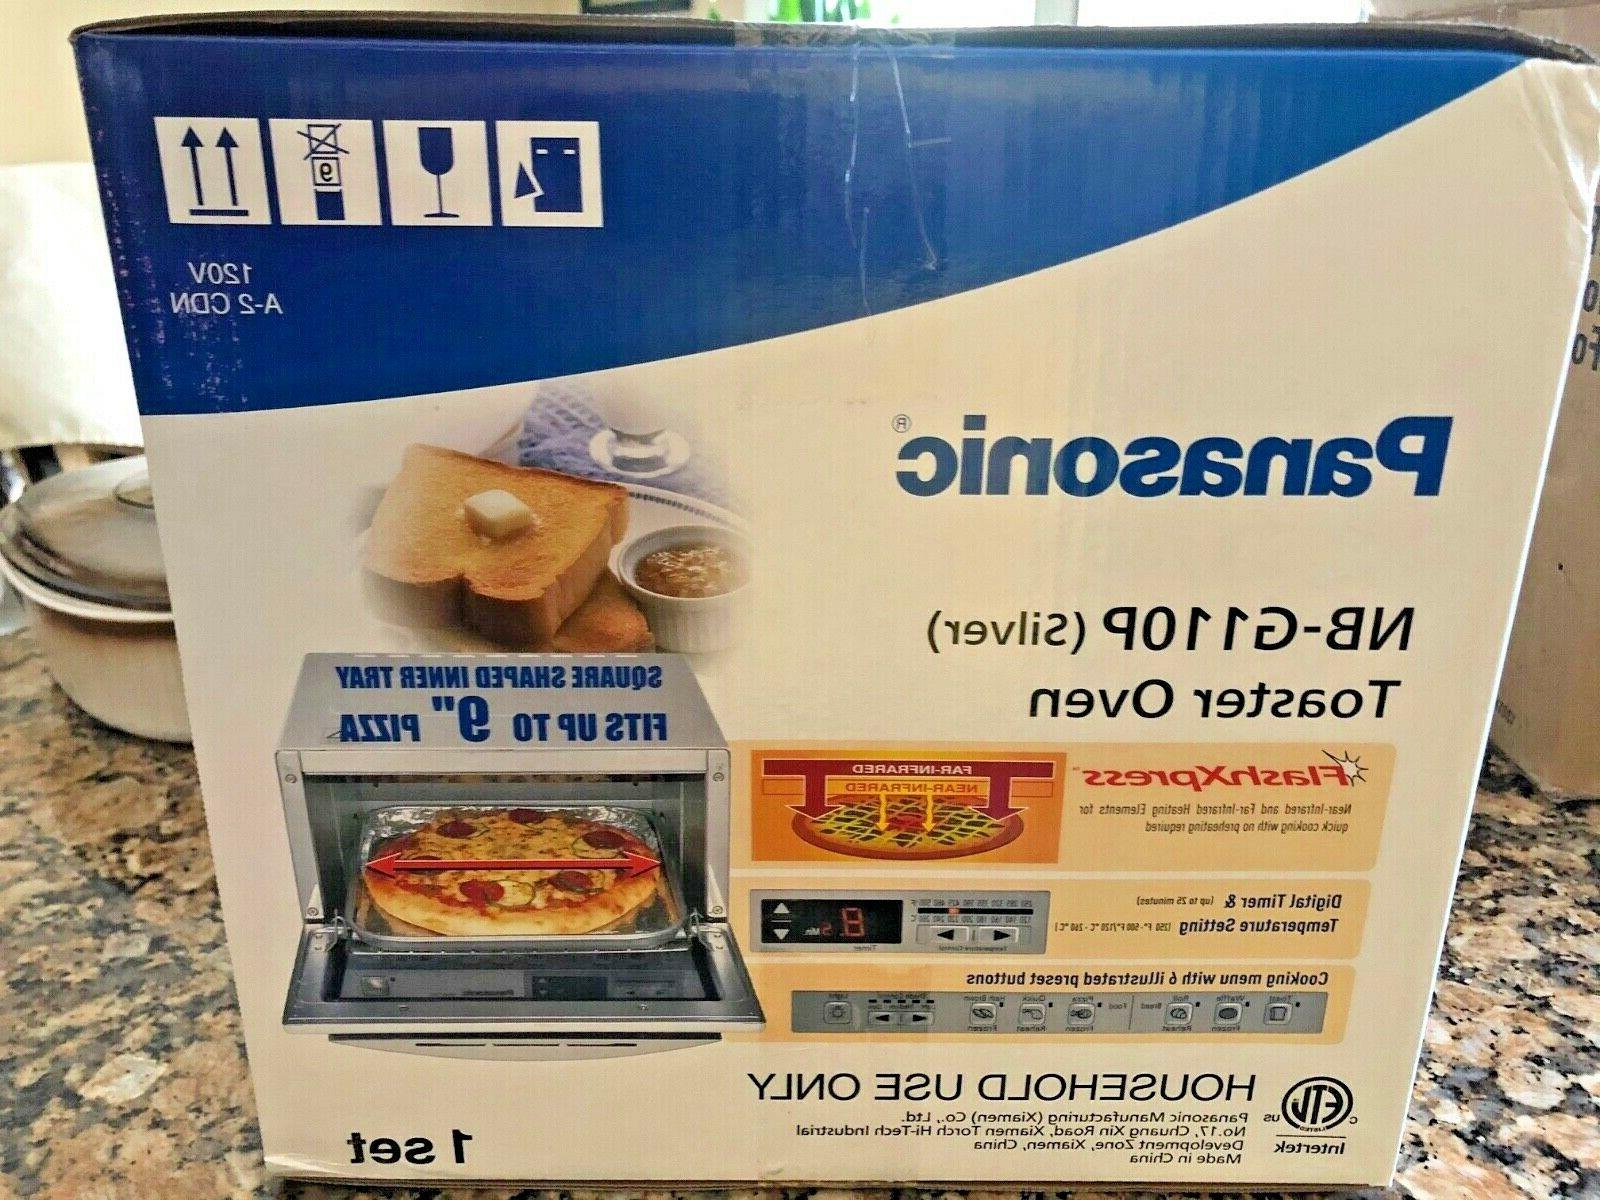 Panasonic Oven Double Infrared Heating,